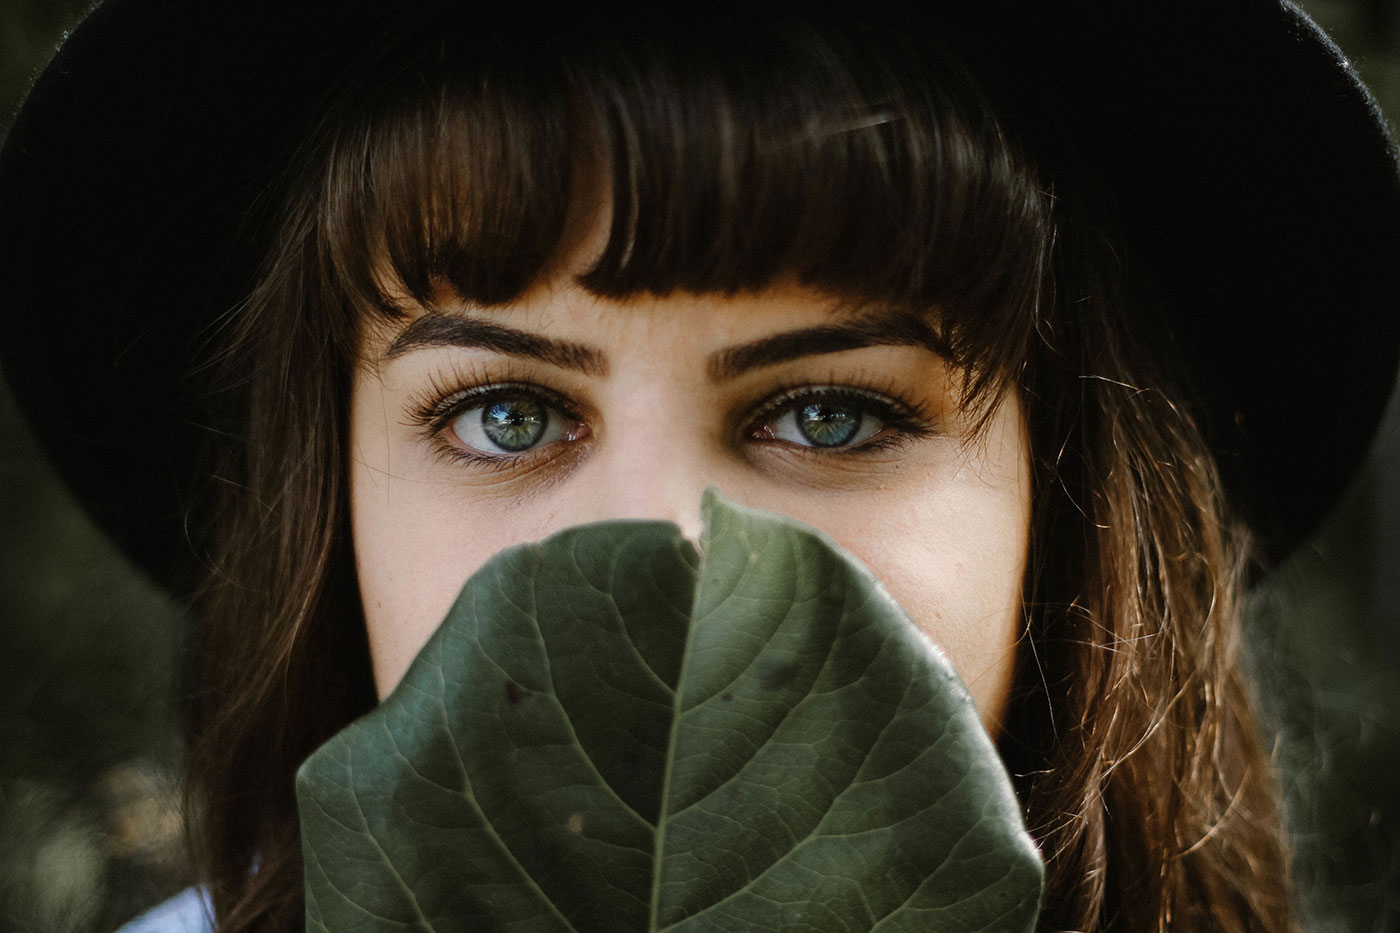 Does Depersonalization Affect Vision